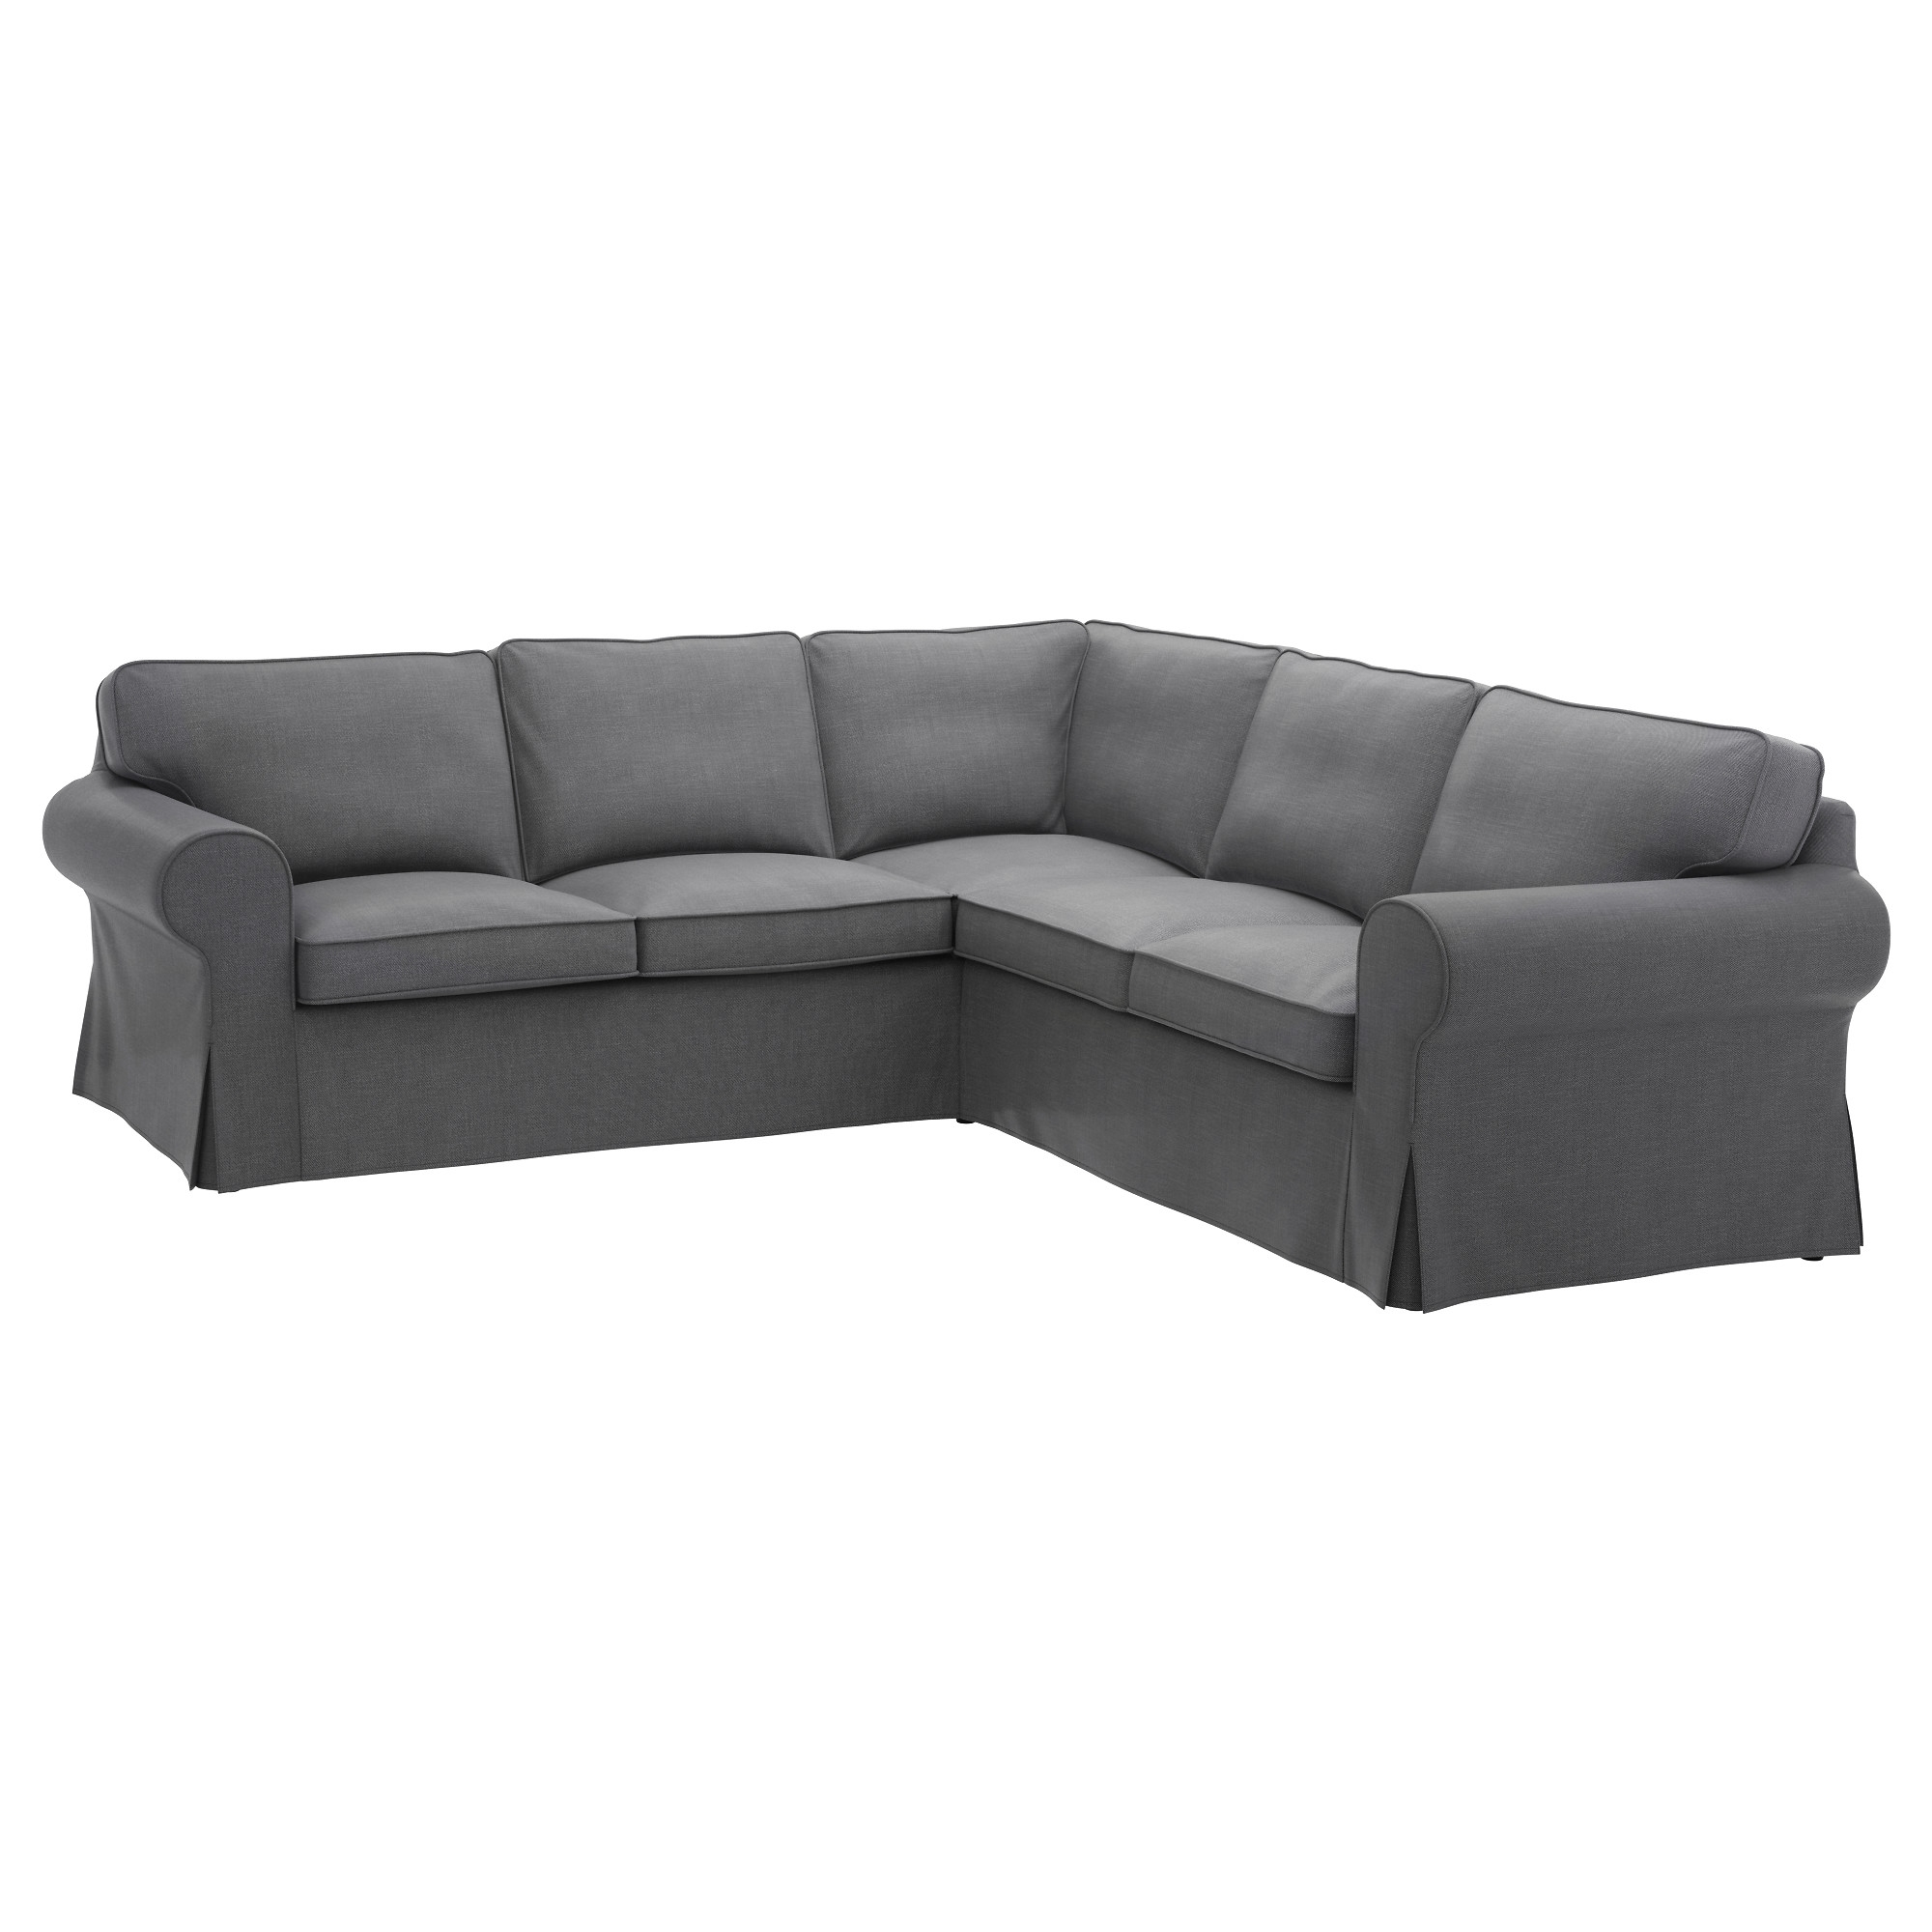 Ikea Sectional Sleeper Sofas With Regard To Well Known Beautiful Sectional Sleeper Sofa Ikea Latest Home Design (View 10 of 20)